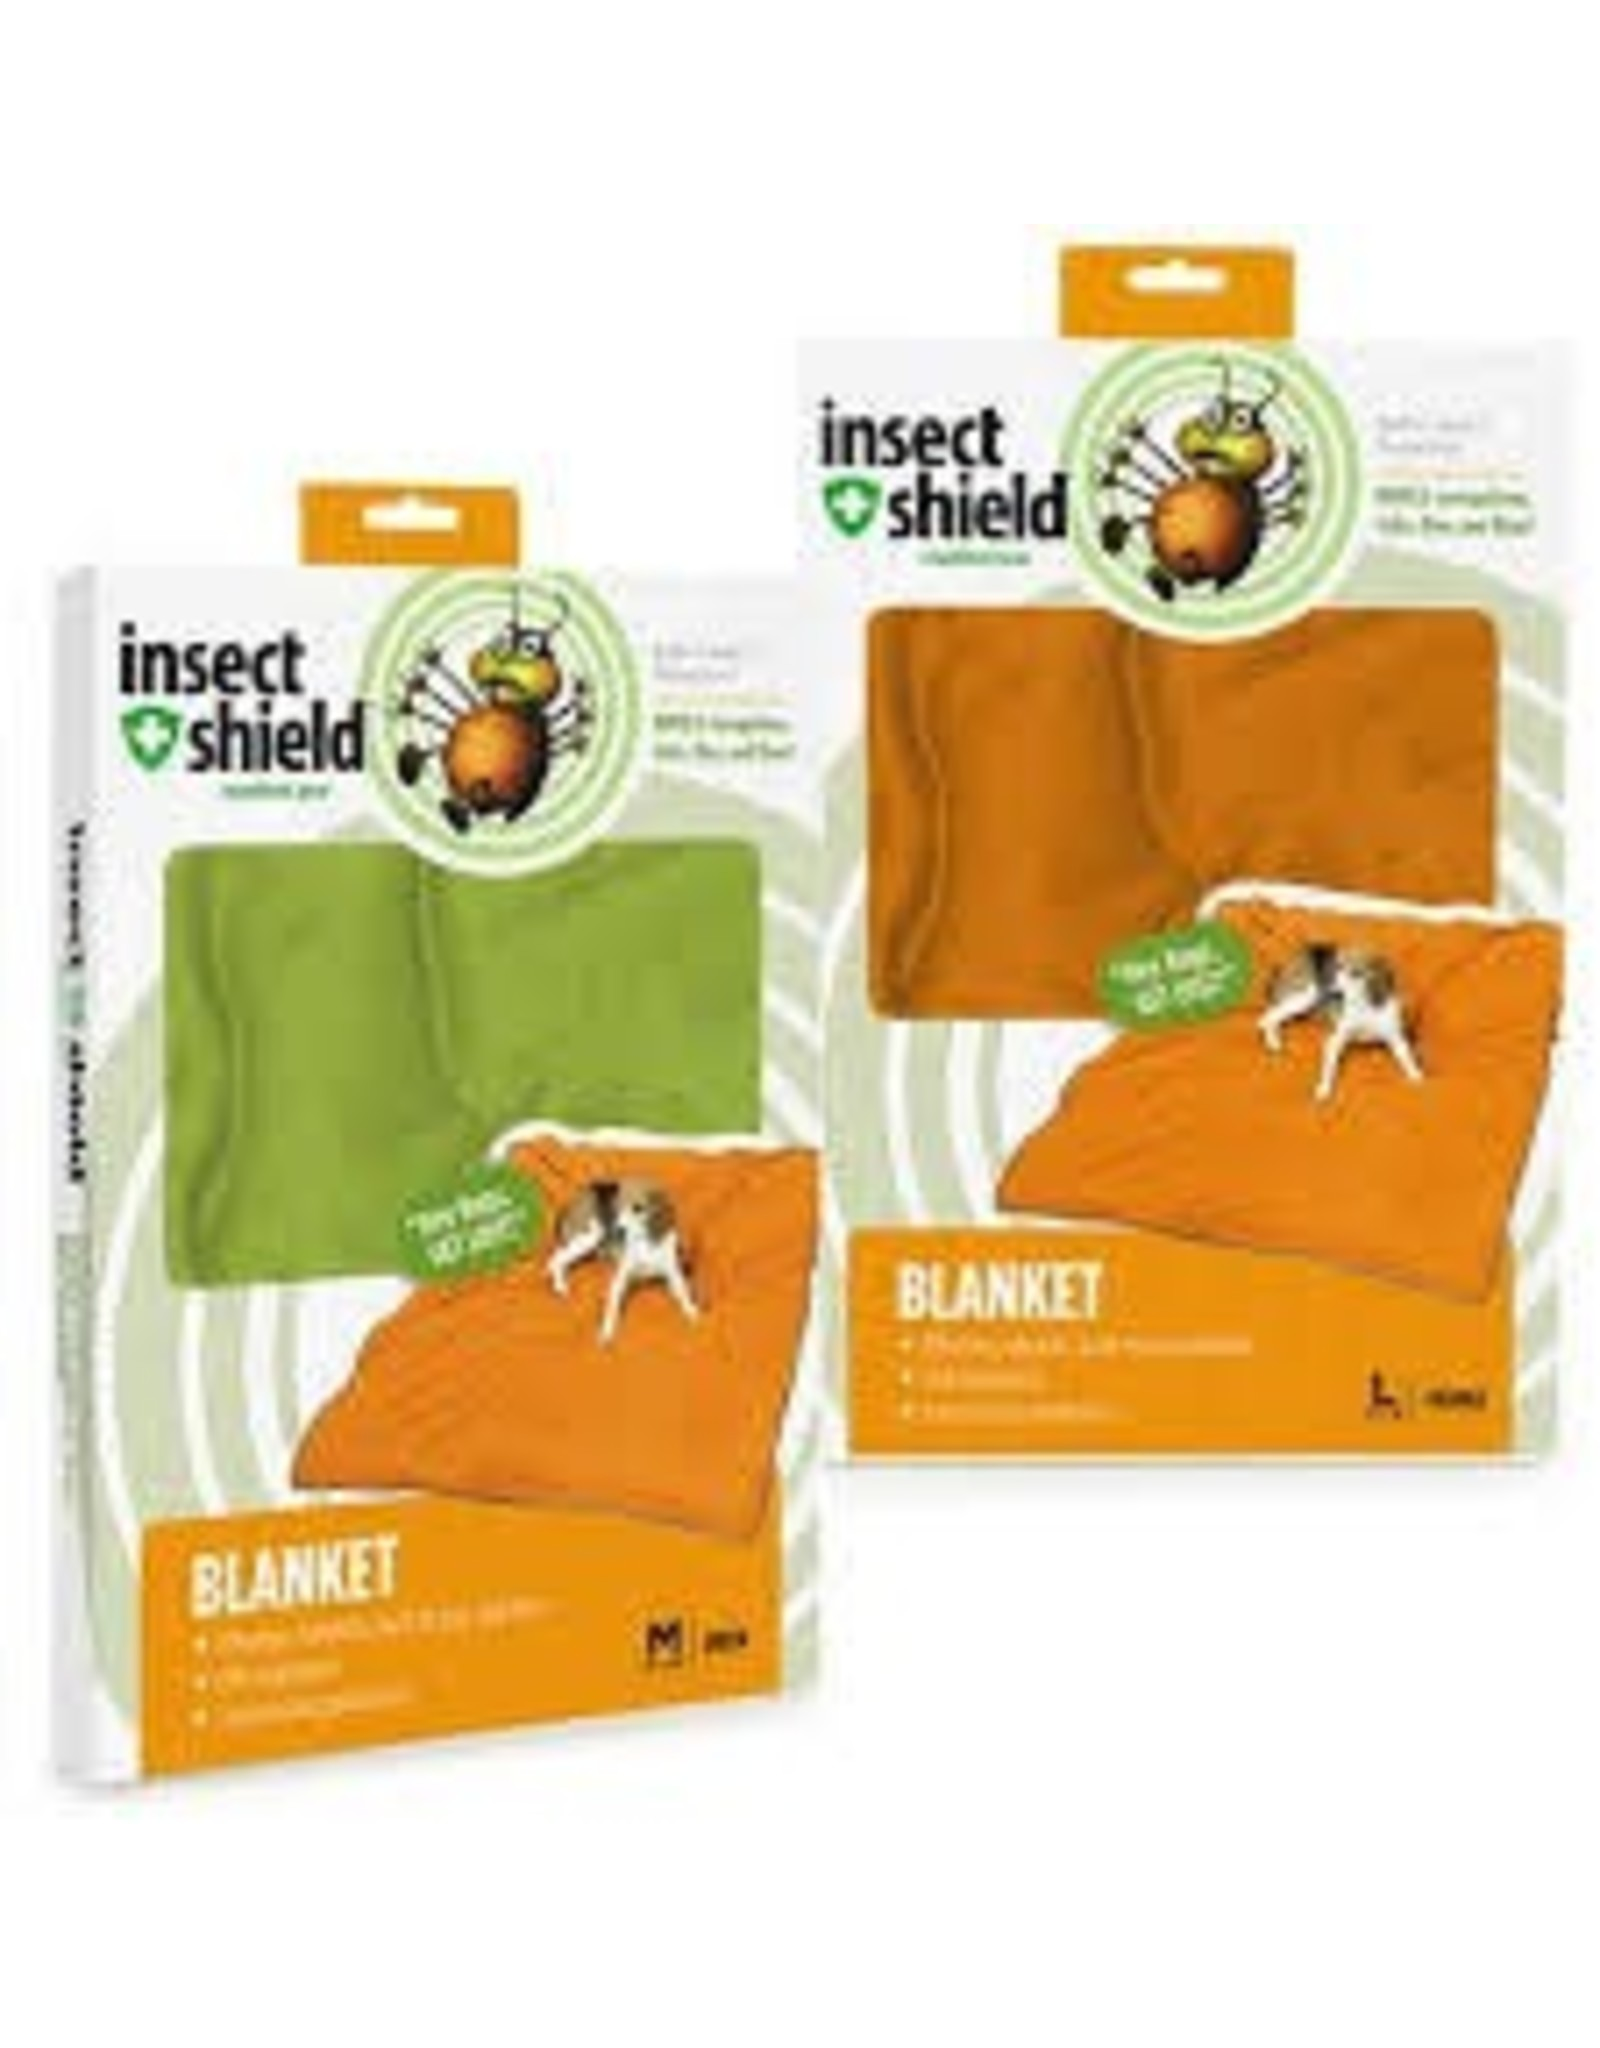 INSECT SHIELD BLANKET ORANGE